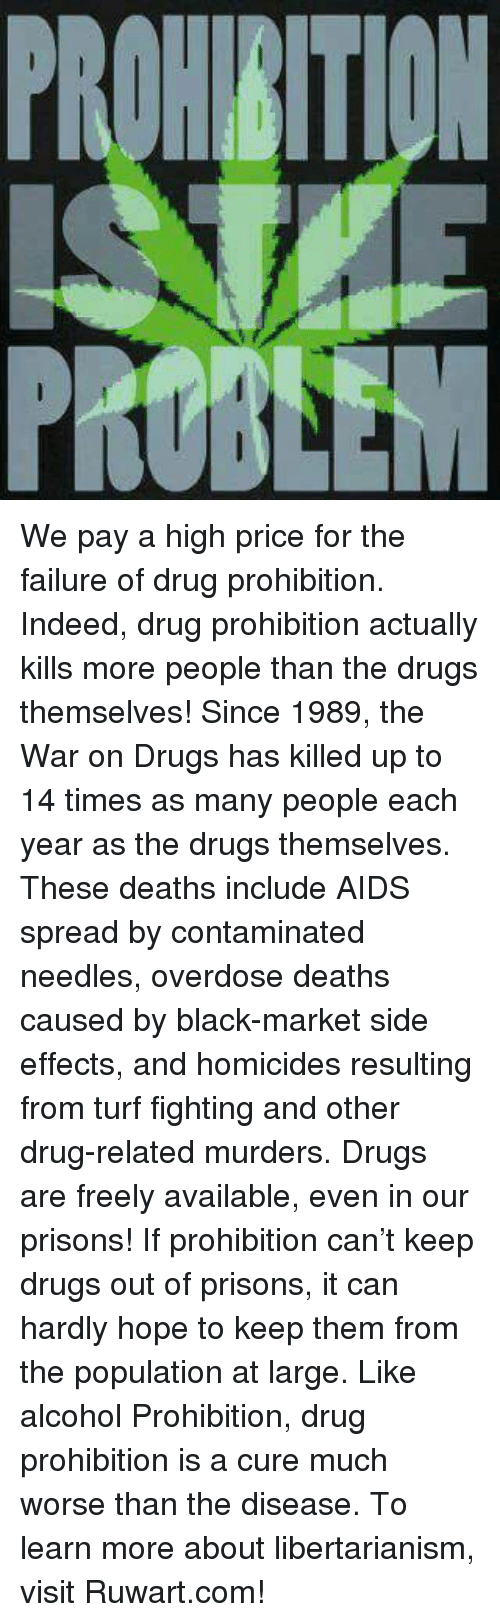 the failed prohibition